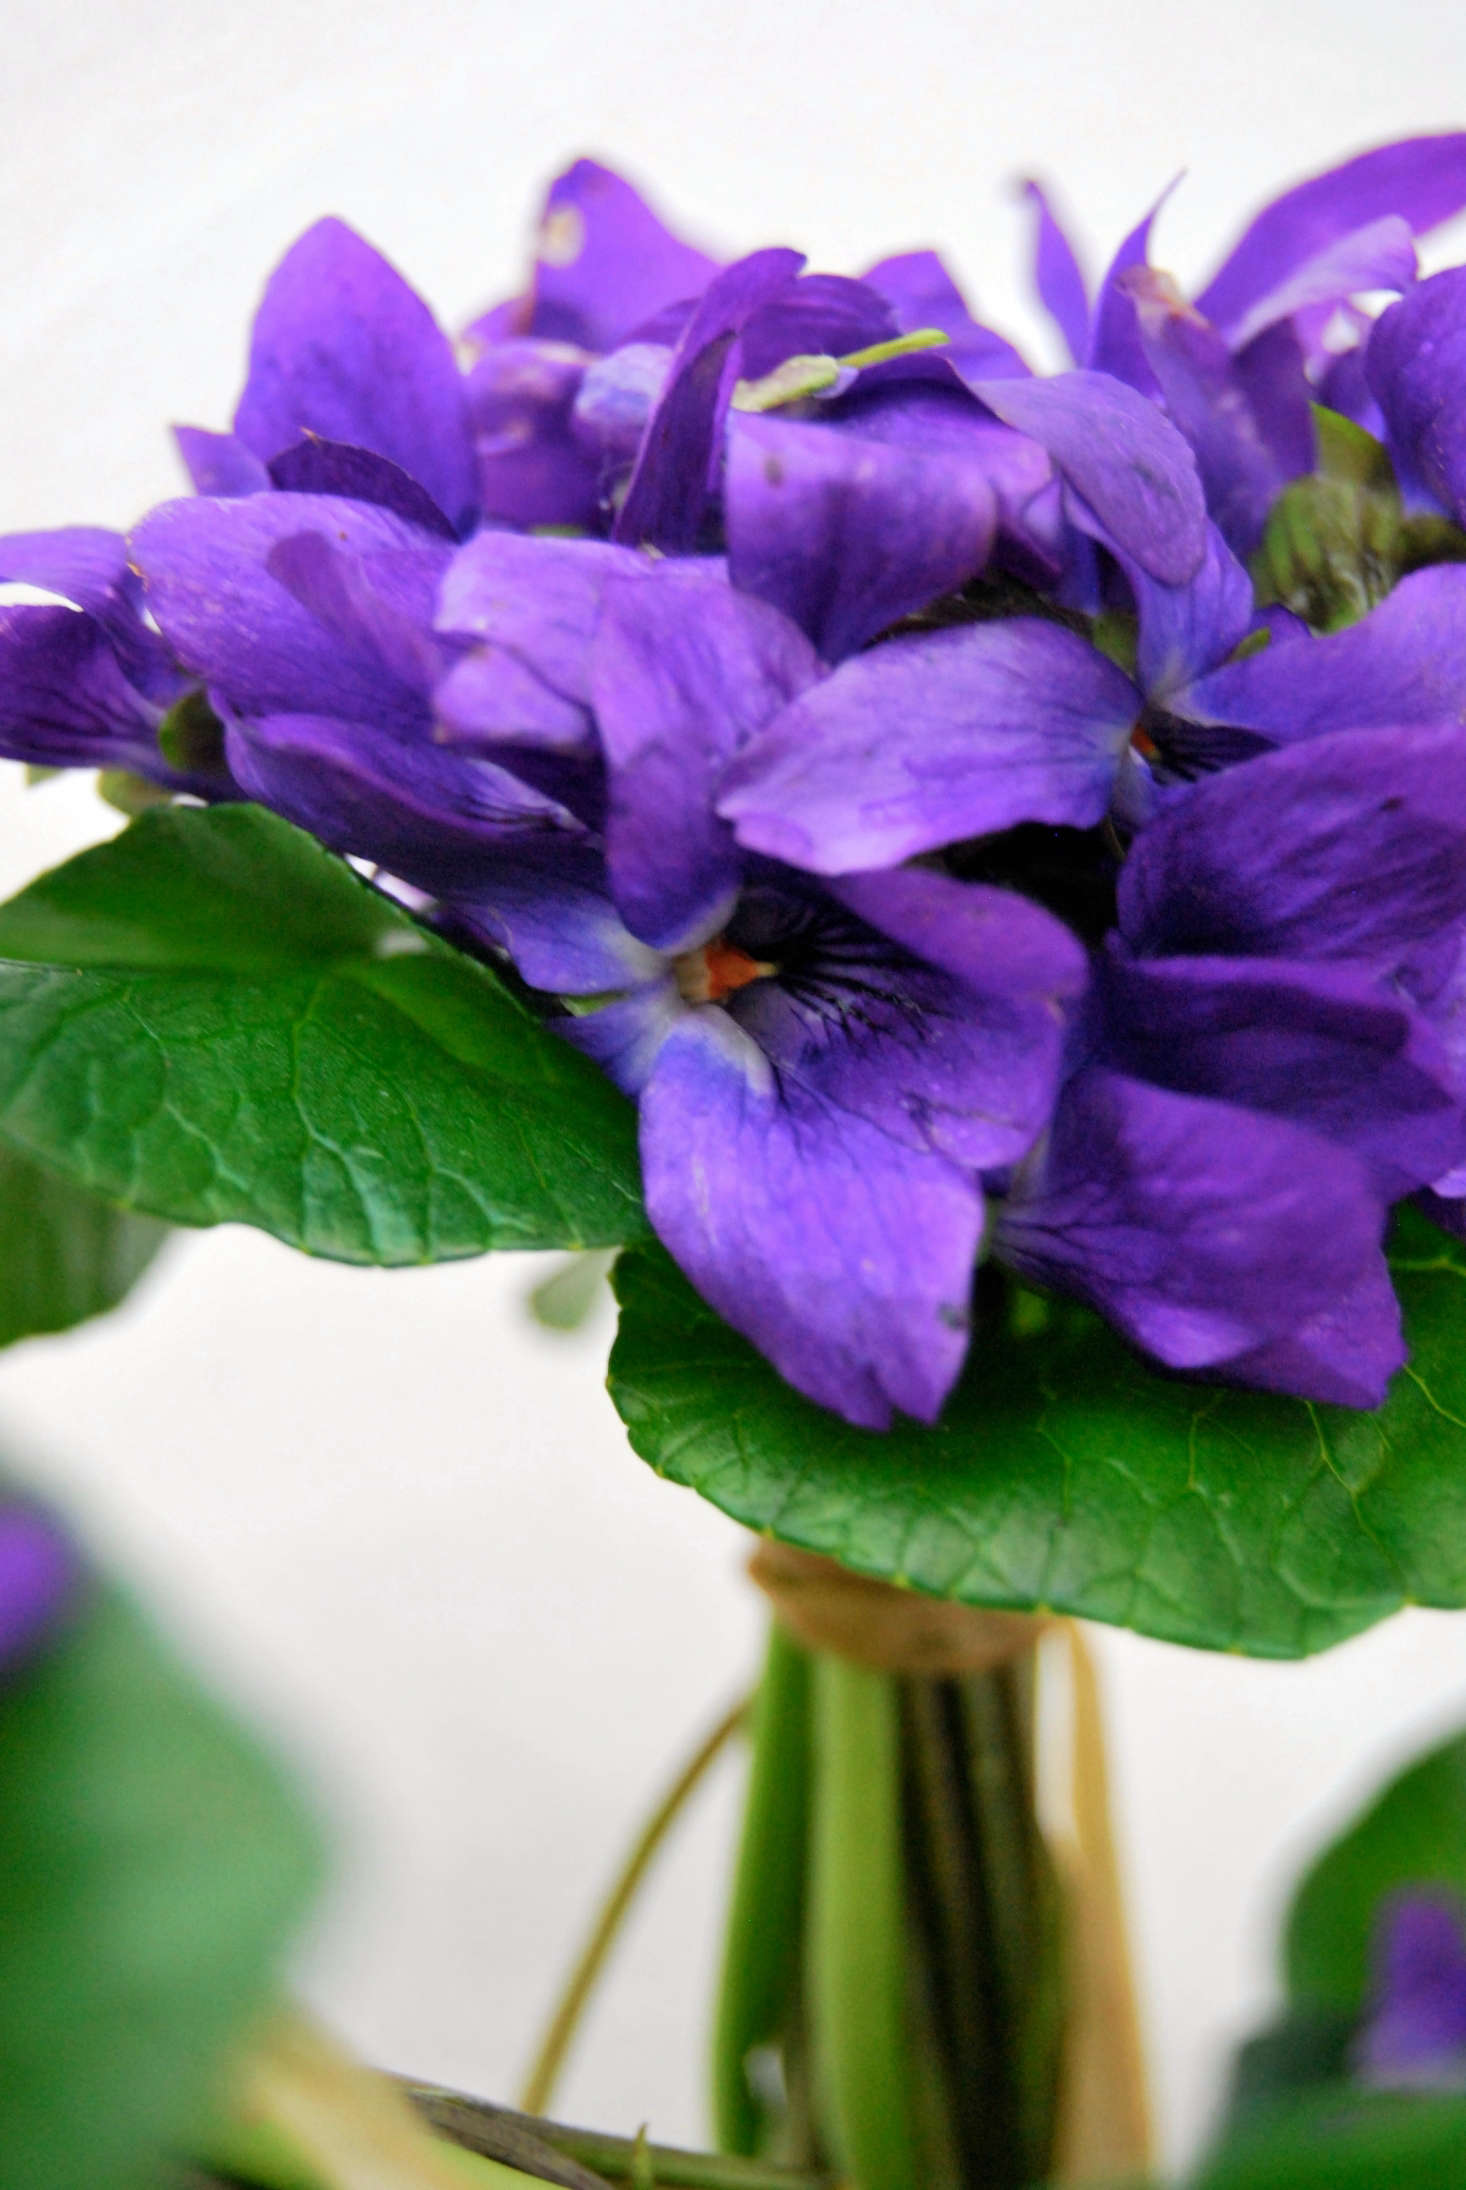 Using the flowers with their greenery offers support and and the contrast of the flowers against the leaves shows off the deep purple blossoms.